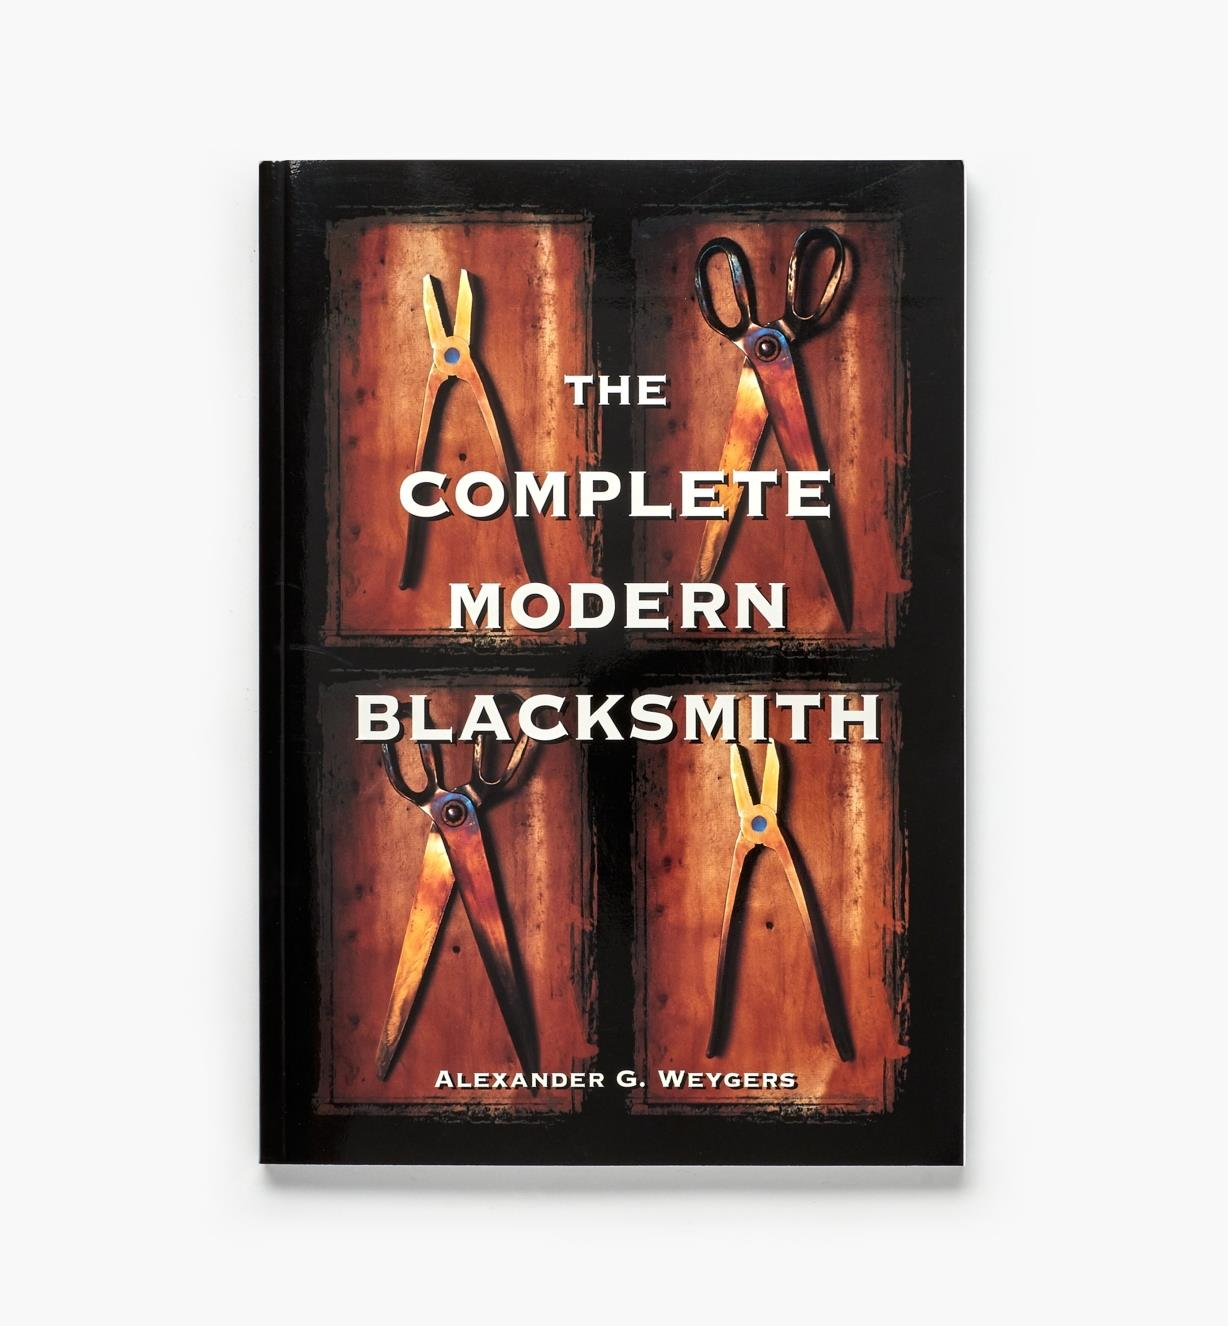 LA905 - The Complete Modern Blacksmith